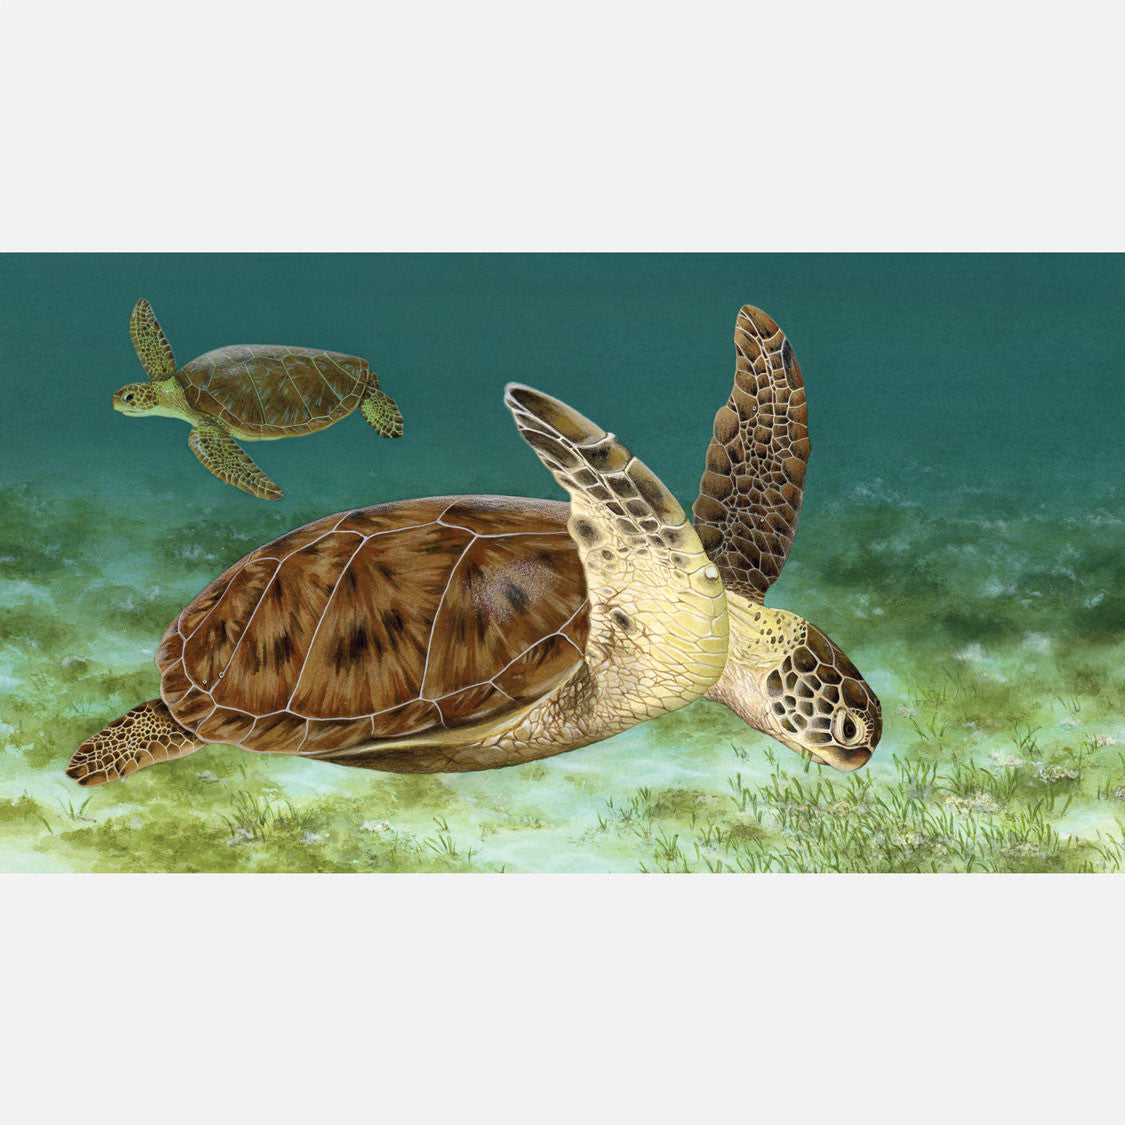 This beautiful illustration is of a green turtle eating seagrass.